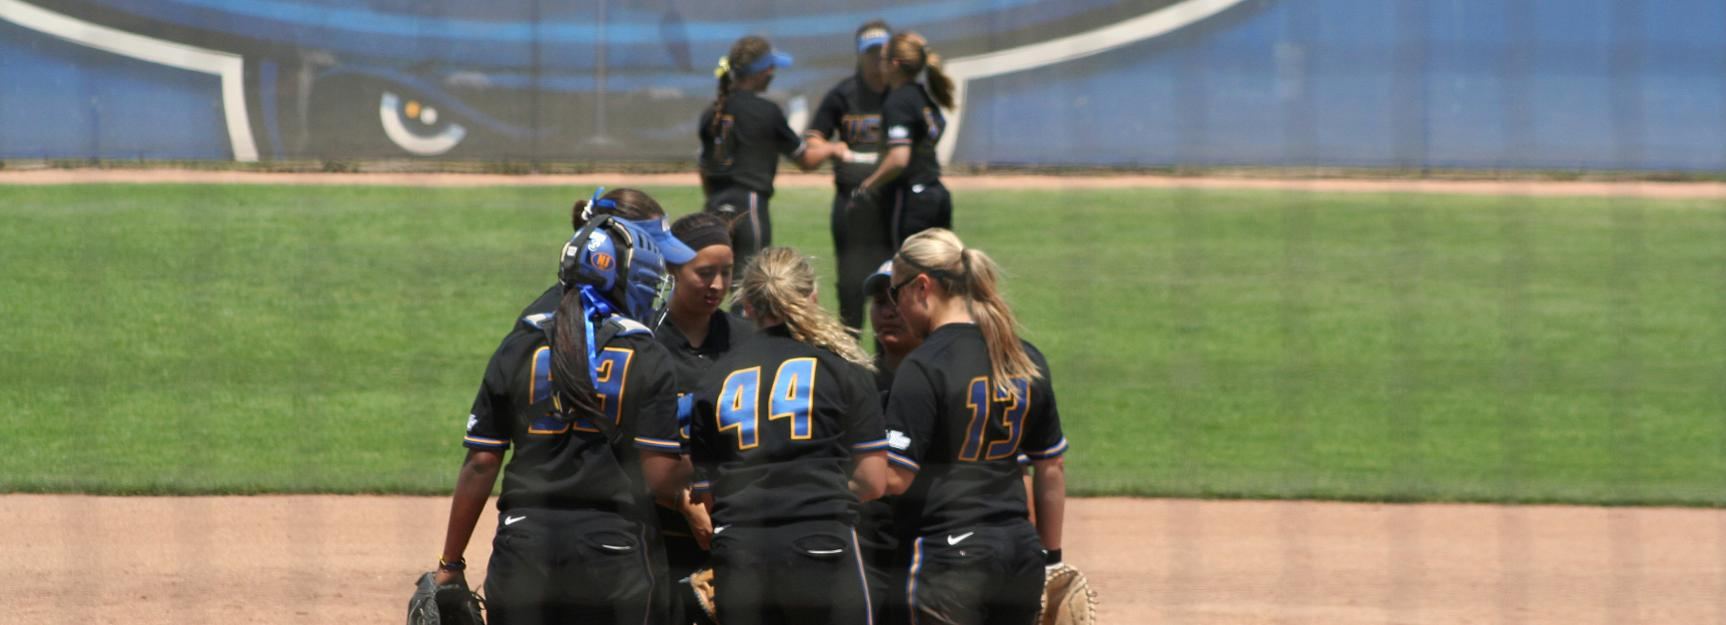 Gaucho Softball Advanced Showcase Dates